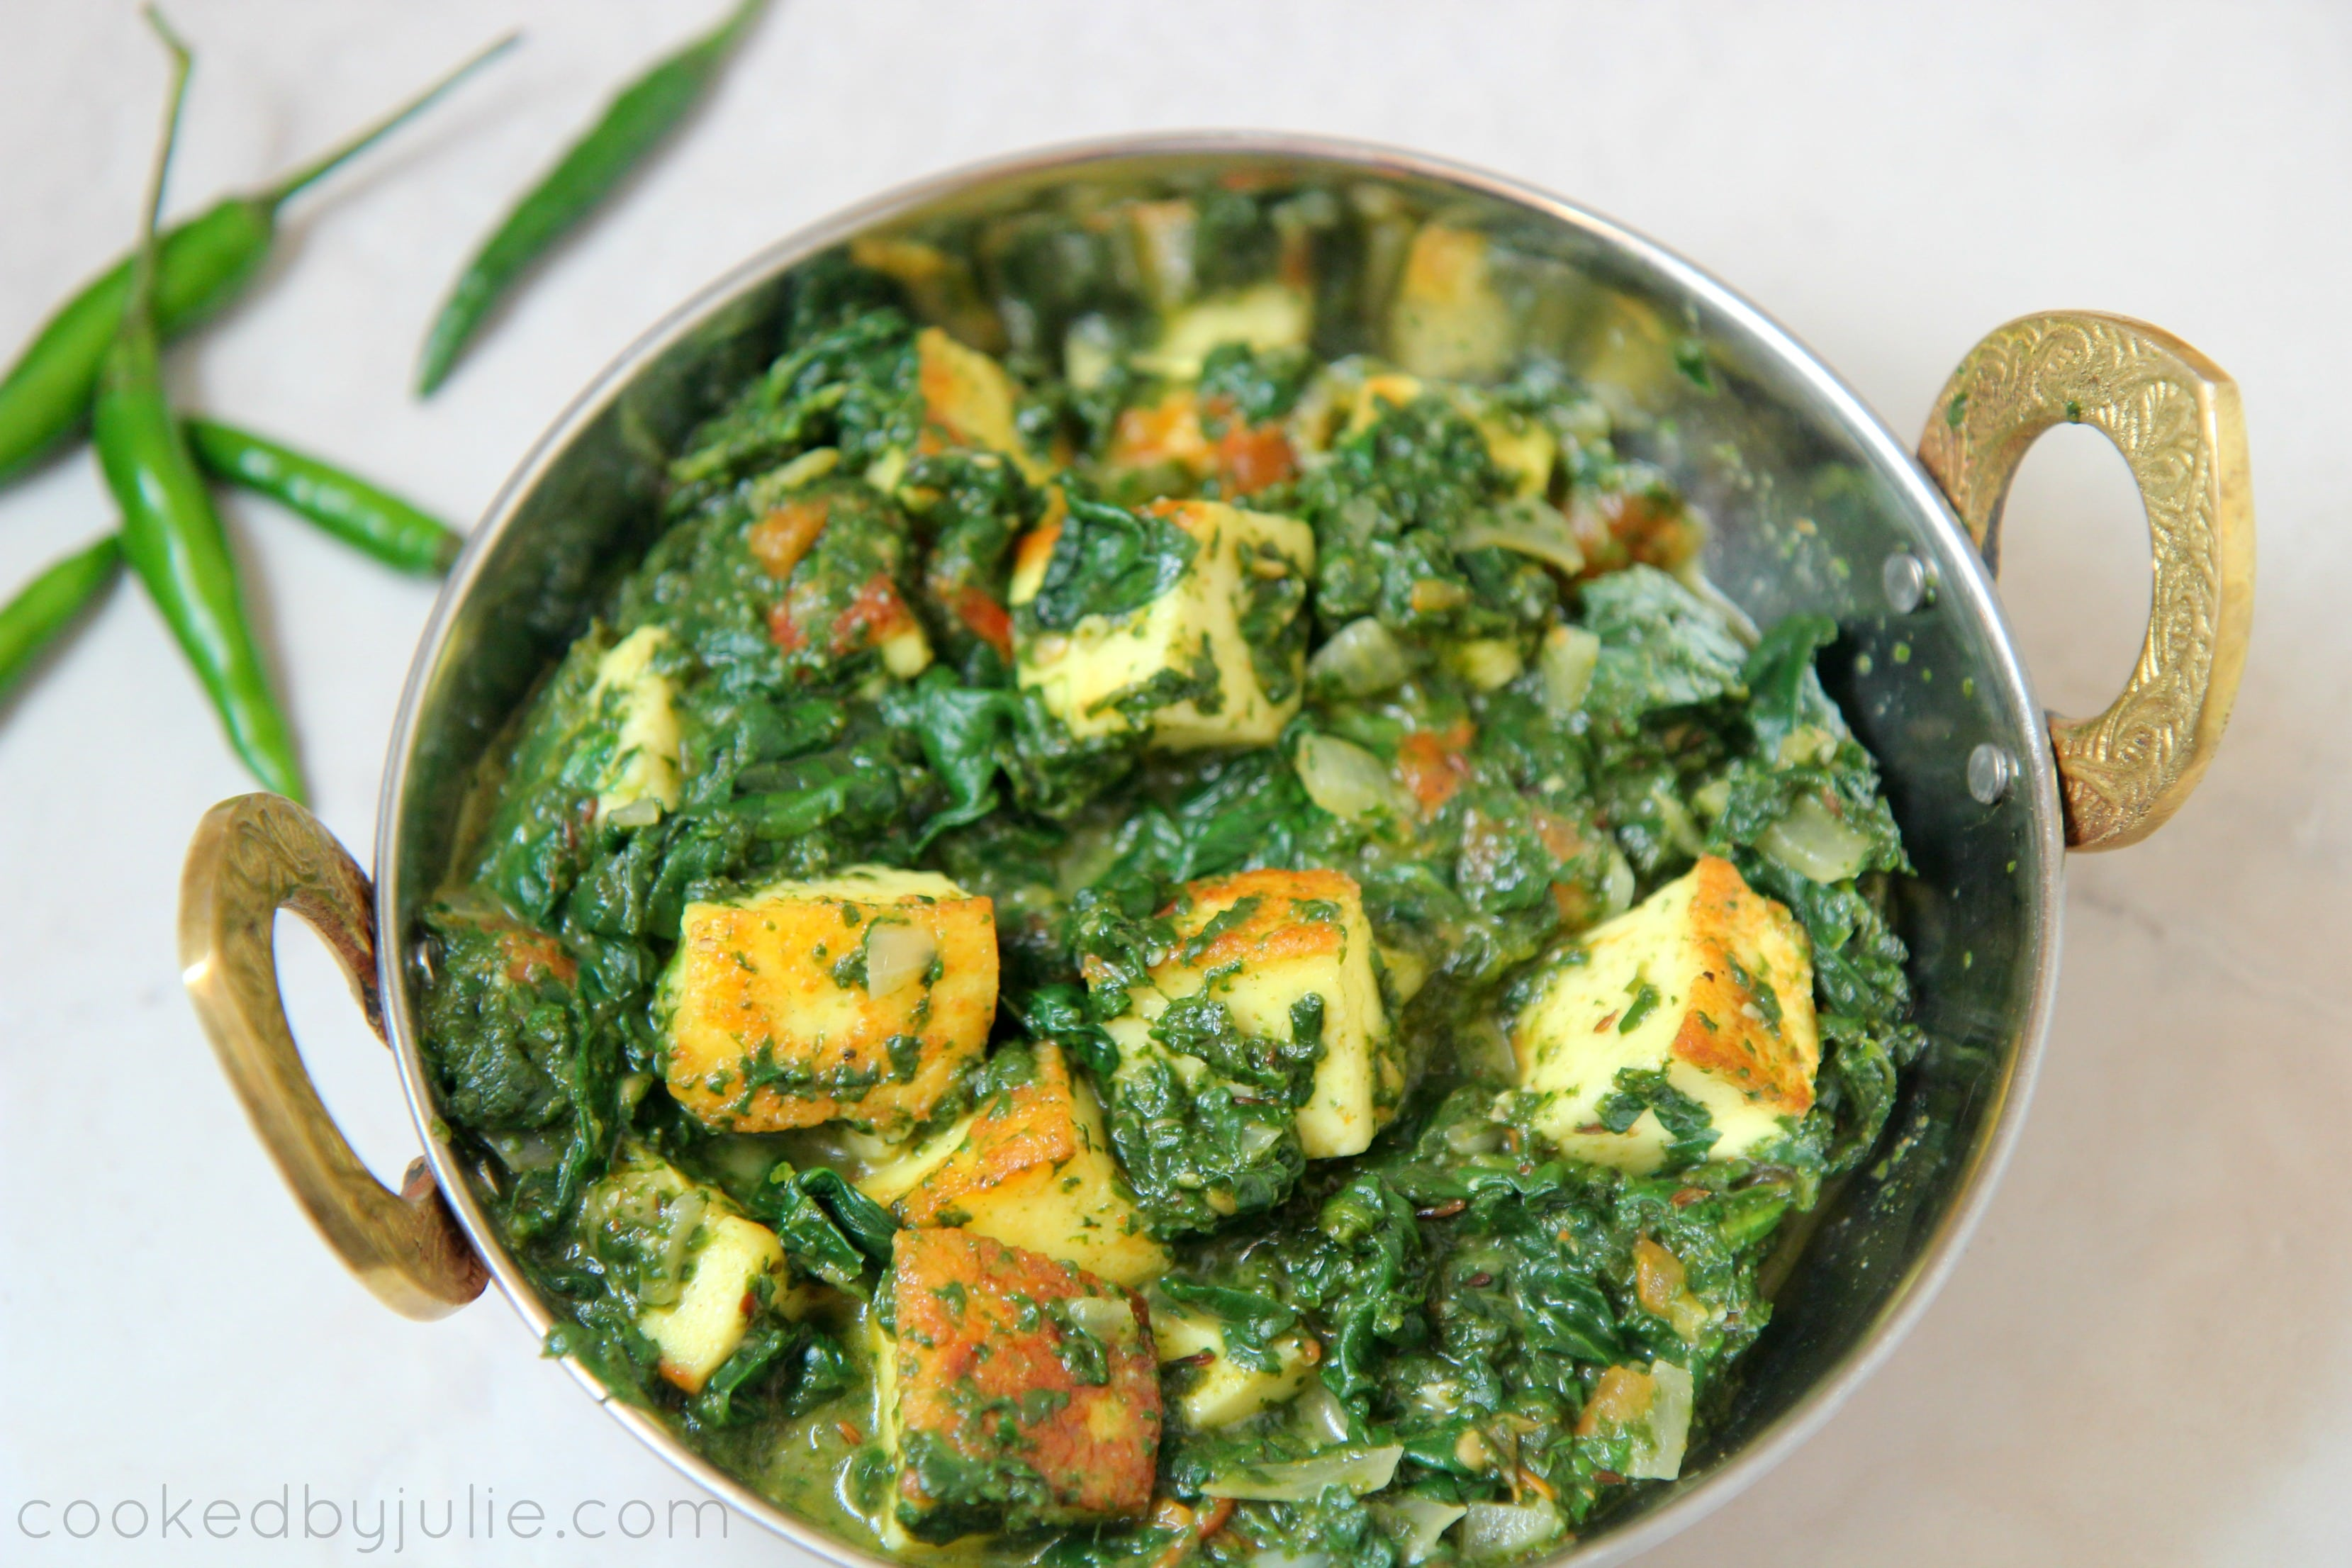 This medium spicy Saag Paneer dish is keto friendly, gluten free, and vegetarian